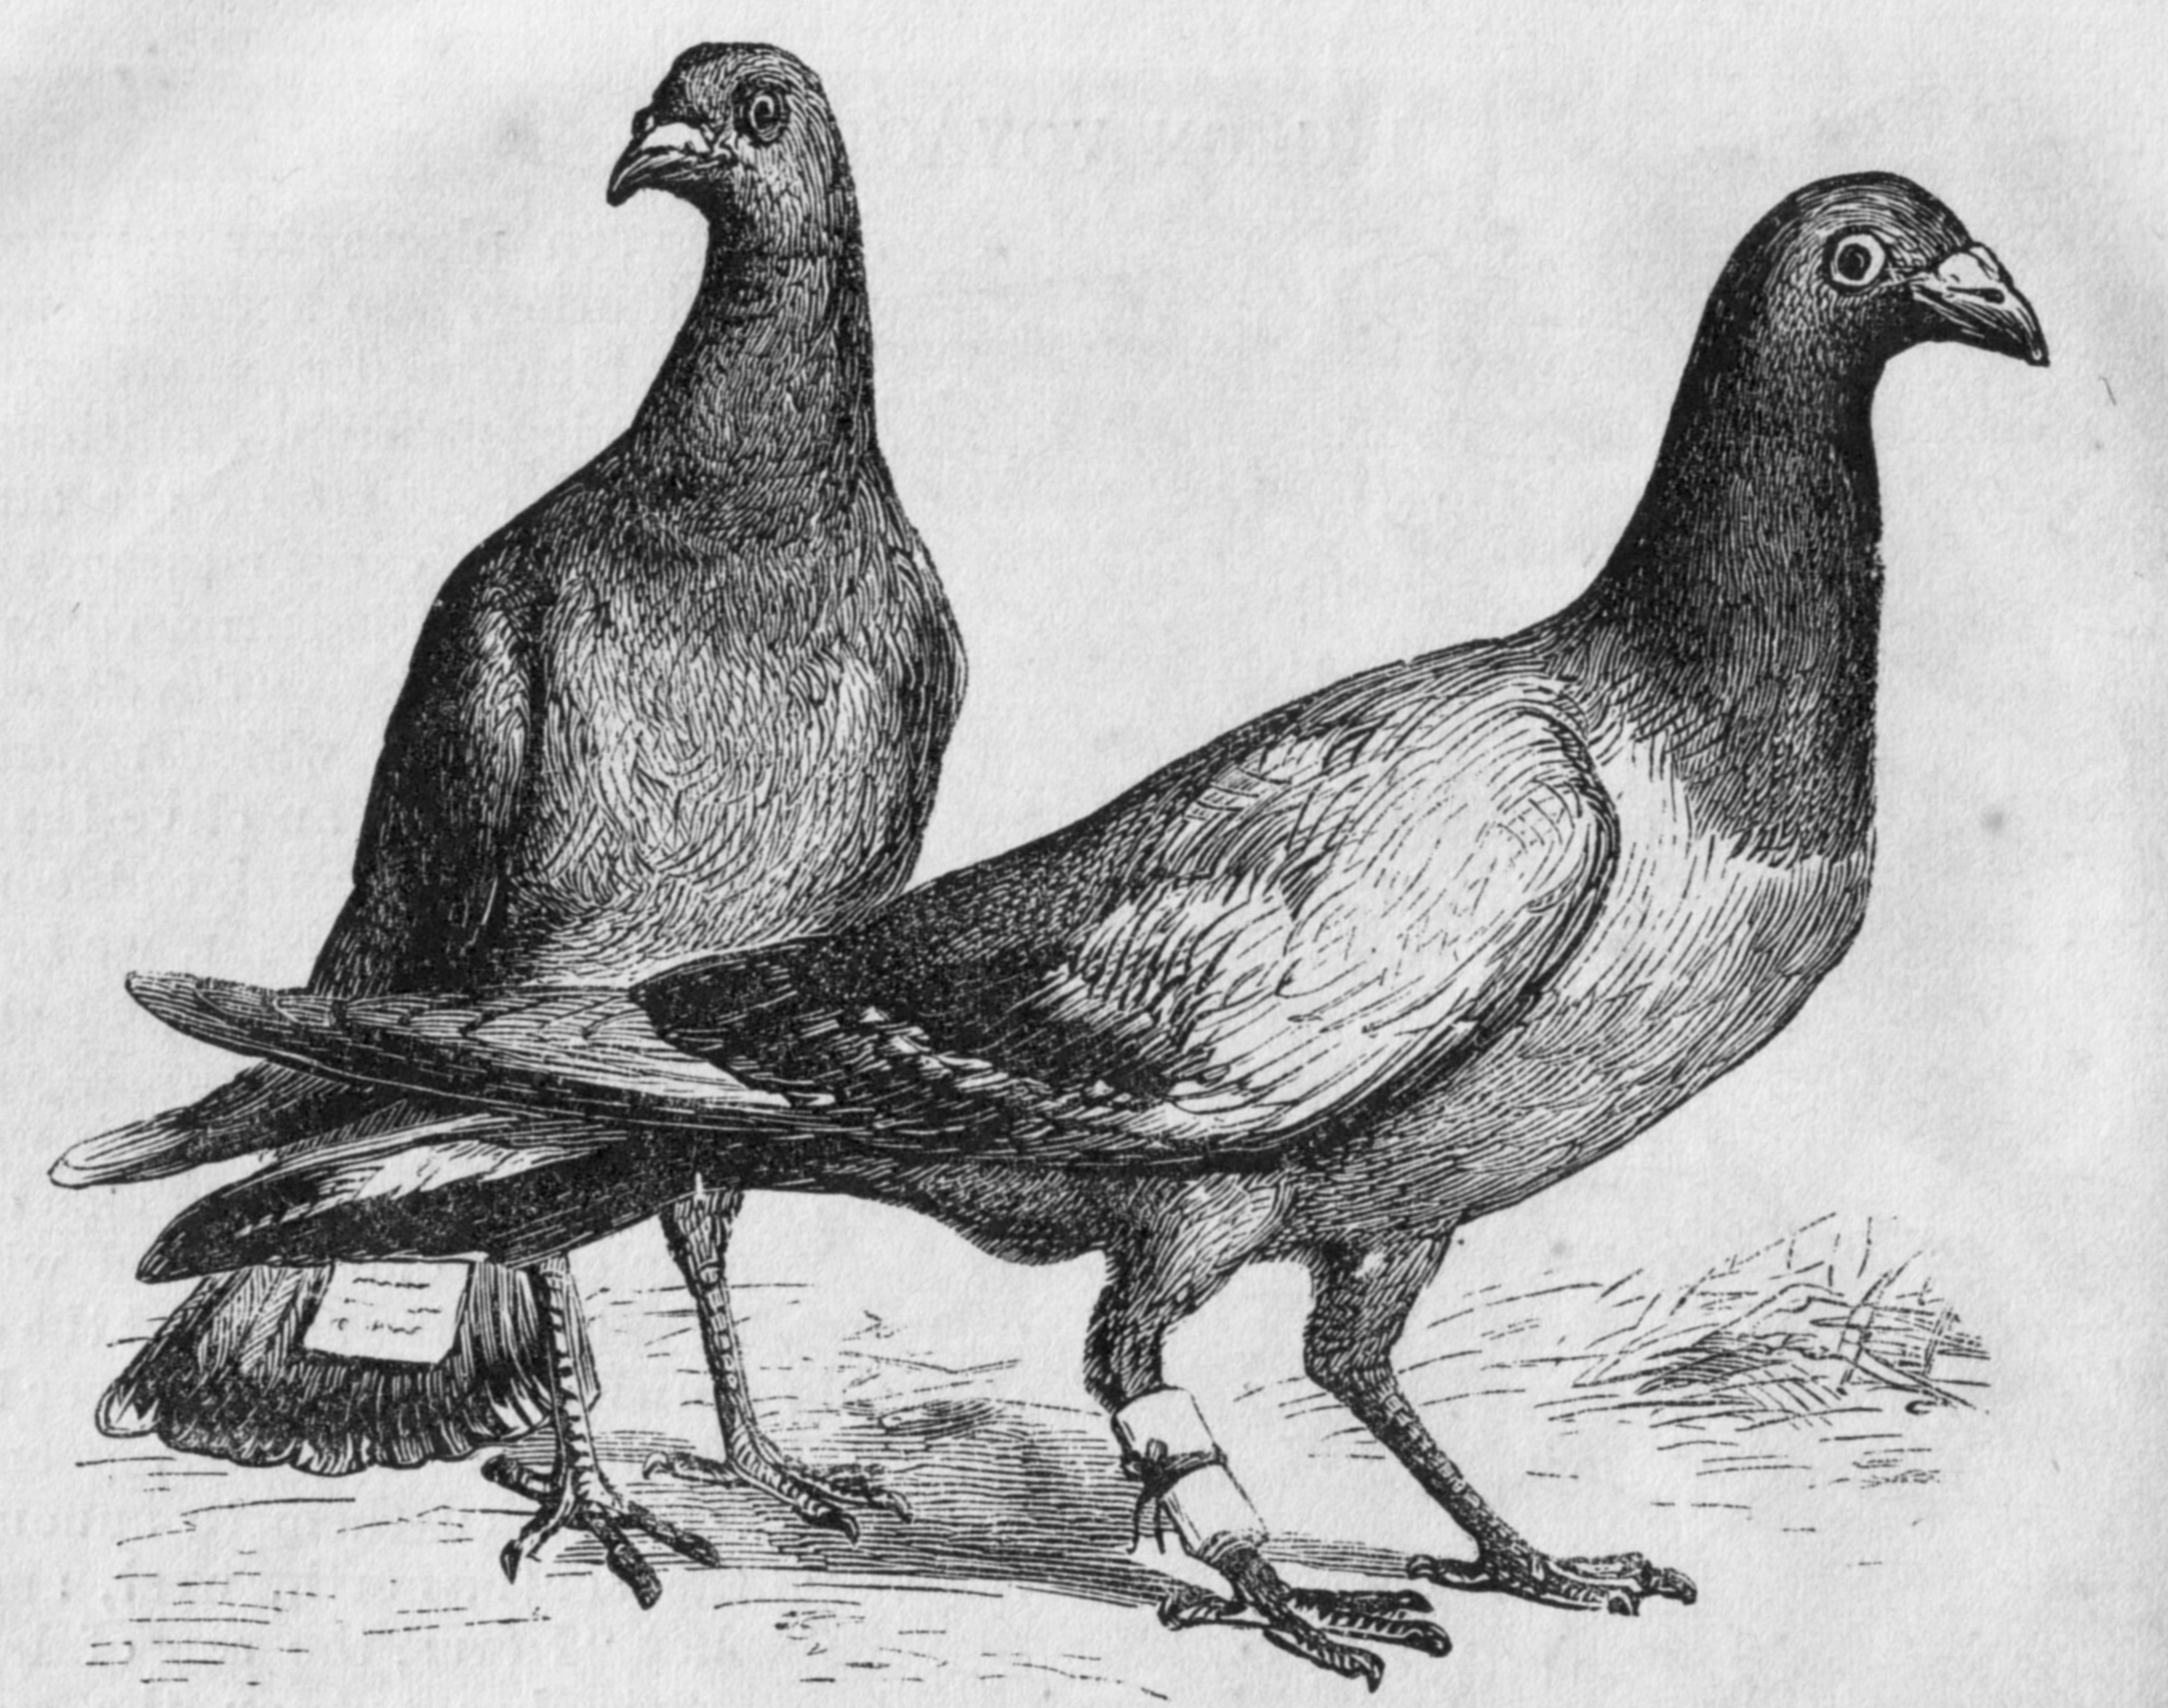 Engraving of homing pigeons, with messages attached. Published in Harper's New Monthly Magazine, No. 275, April, 1873.